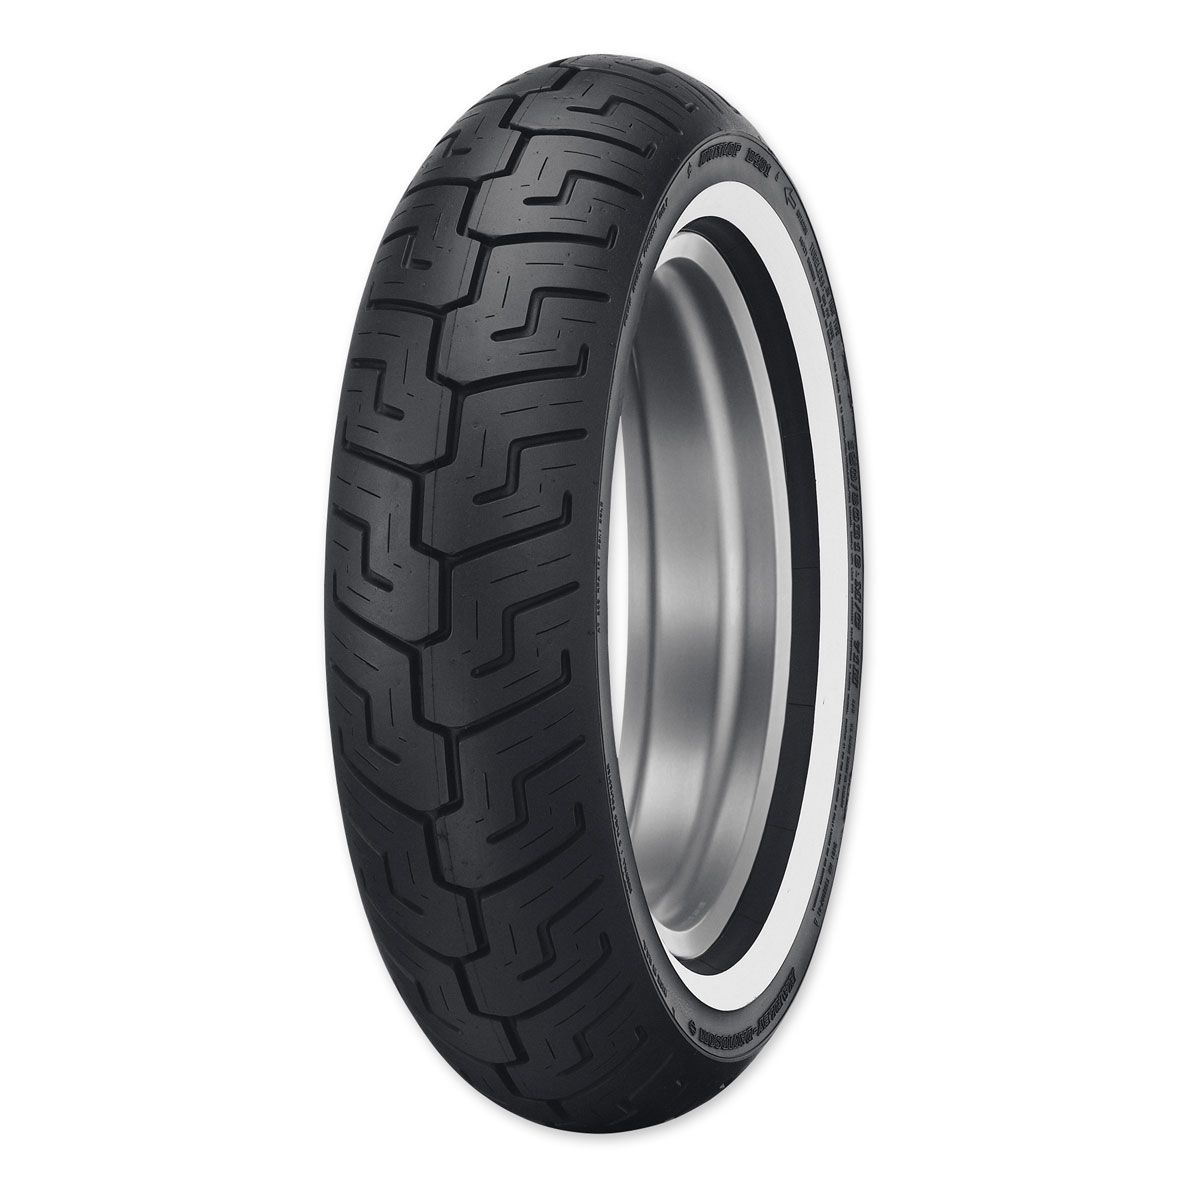 Dunlop D401 150/80B16 Medium Whitewall Rear Tire